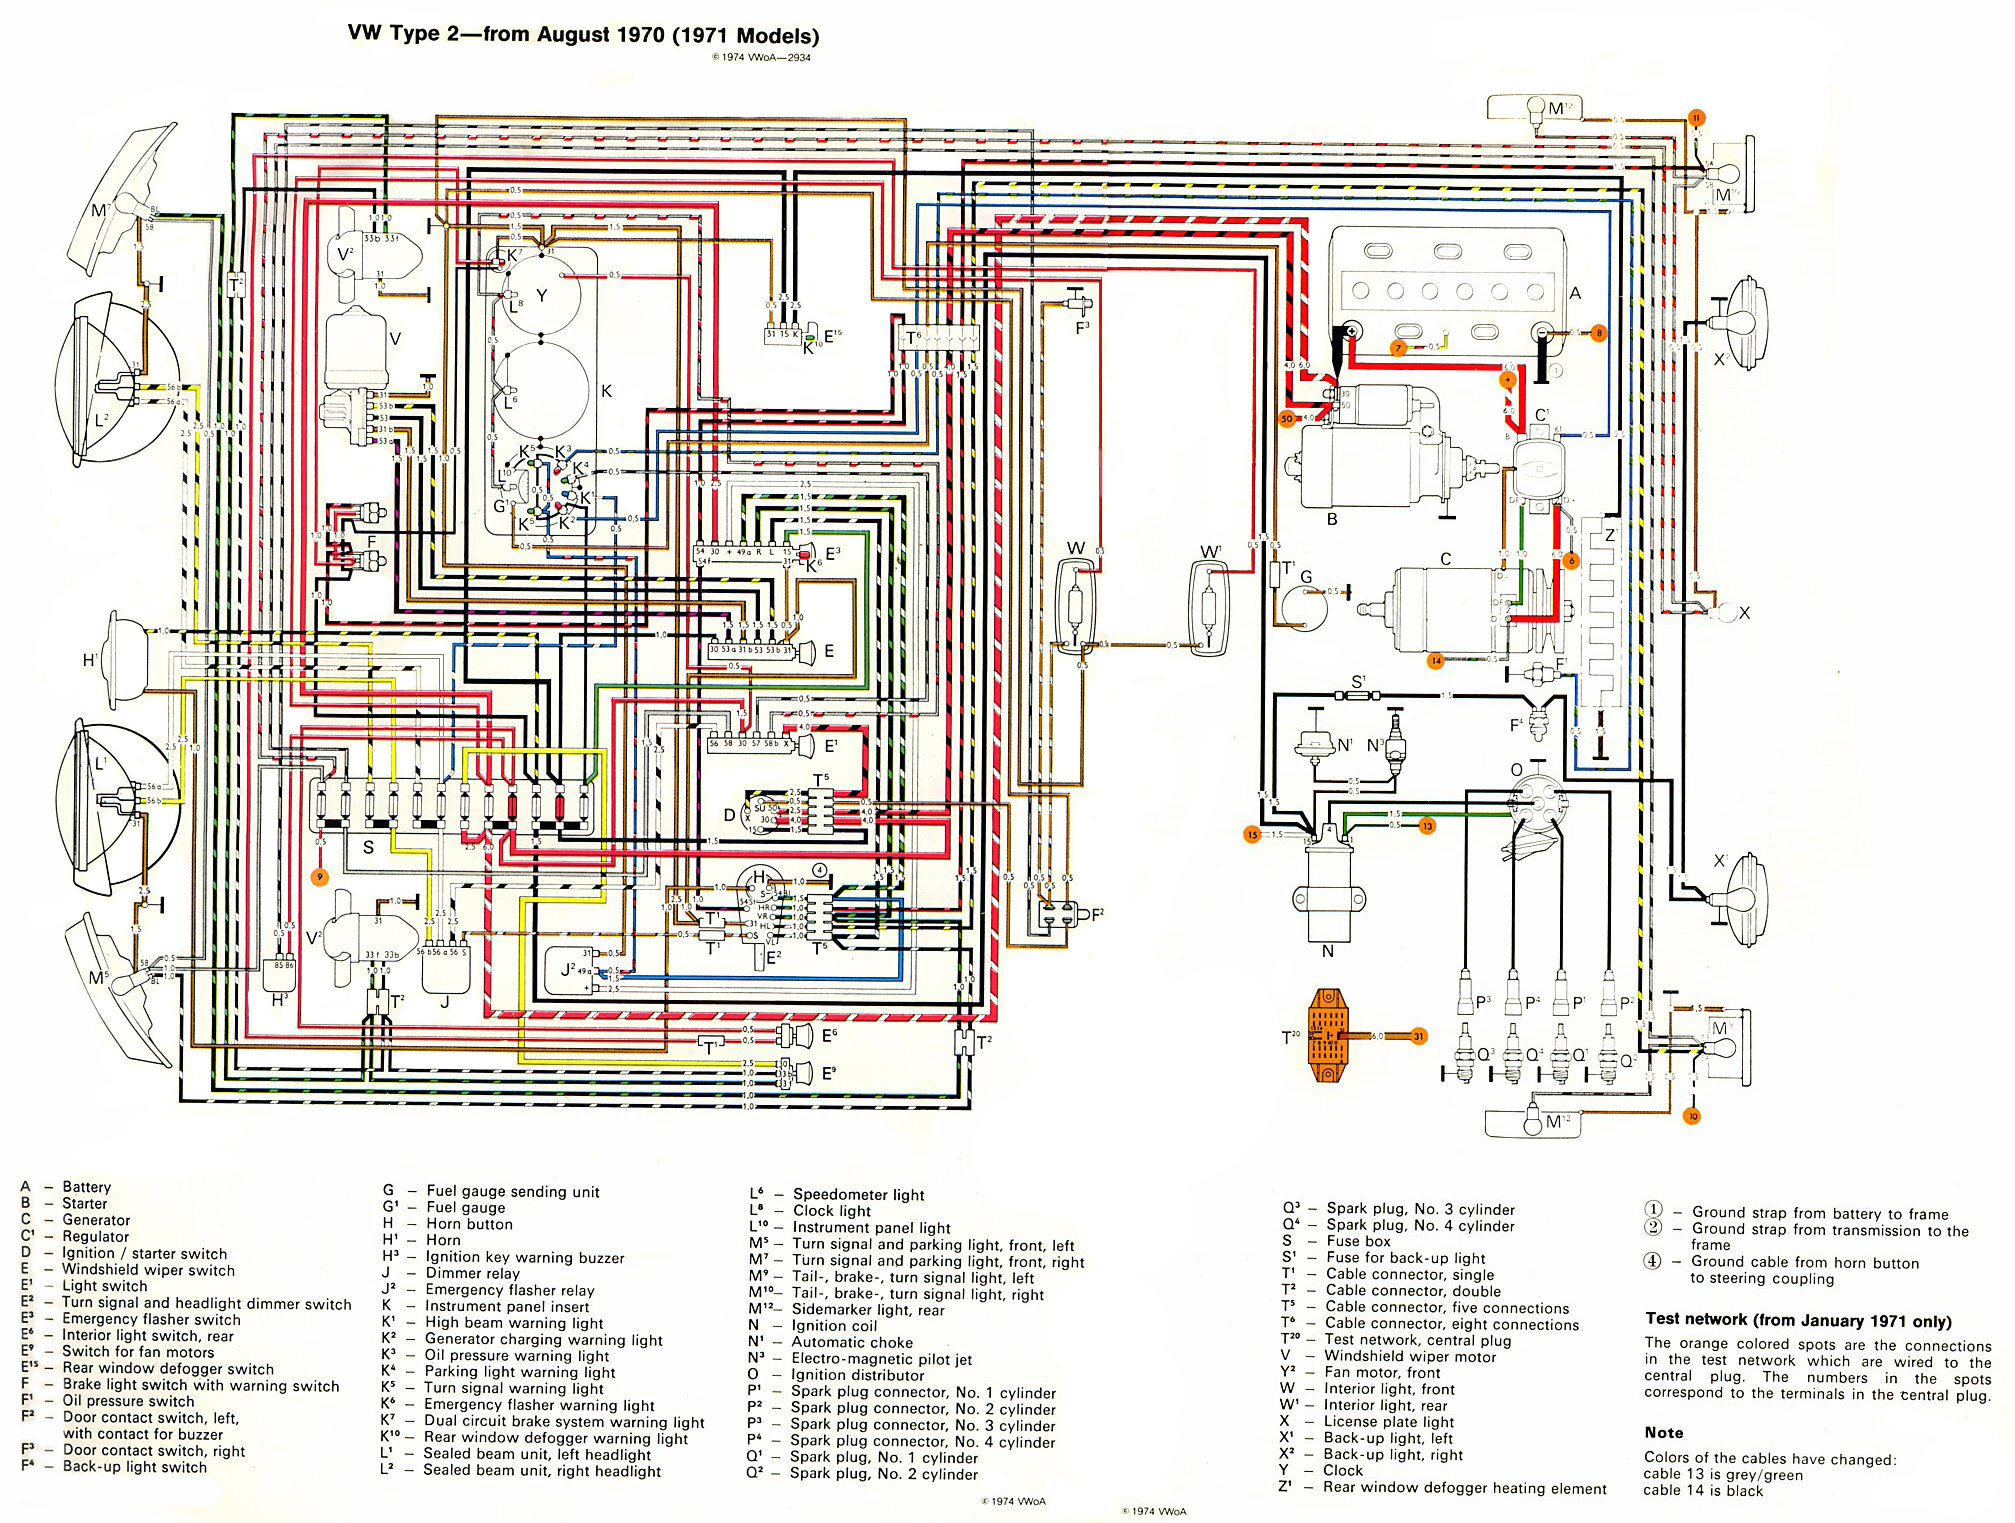 baybus_71_fixed wiring schematic diagram carrier package unit wiring diagram vw wiring diagram symbols at fashall.co